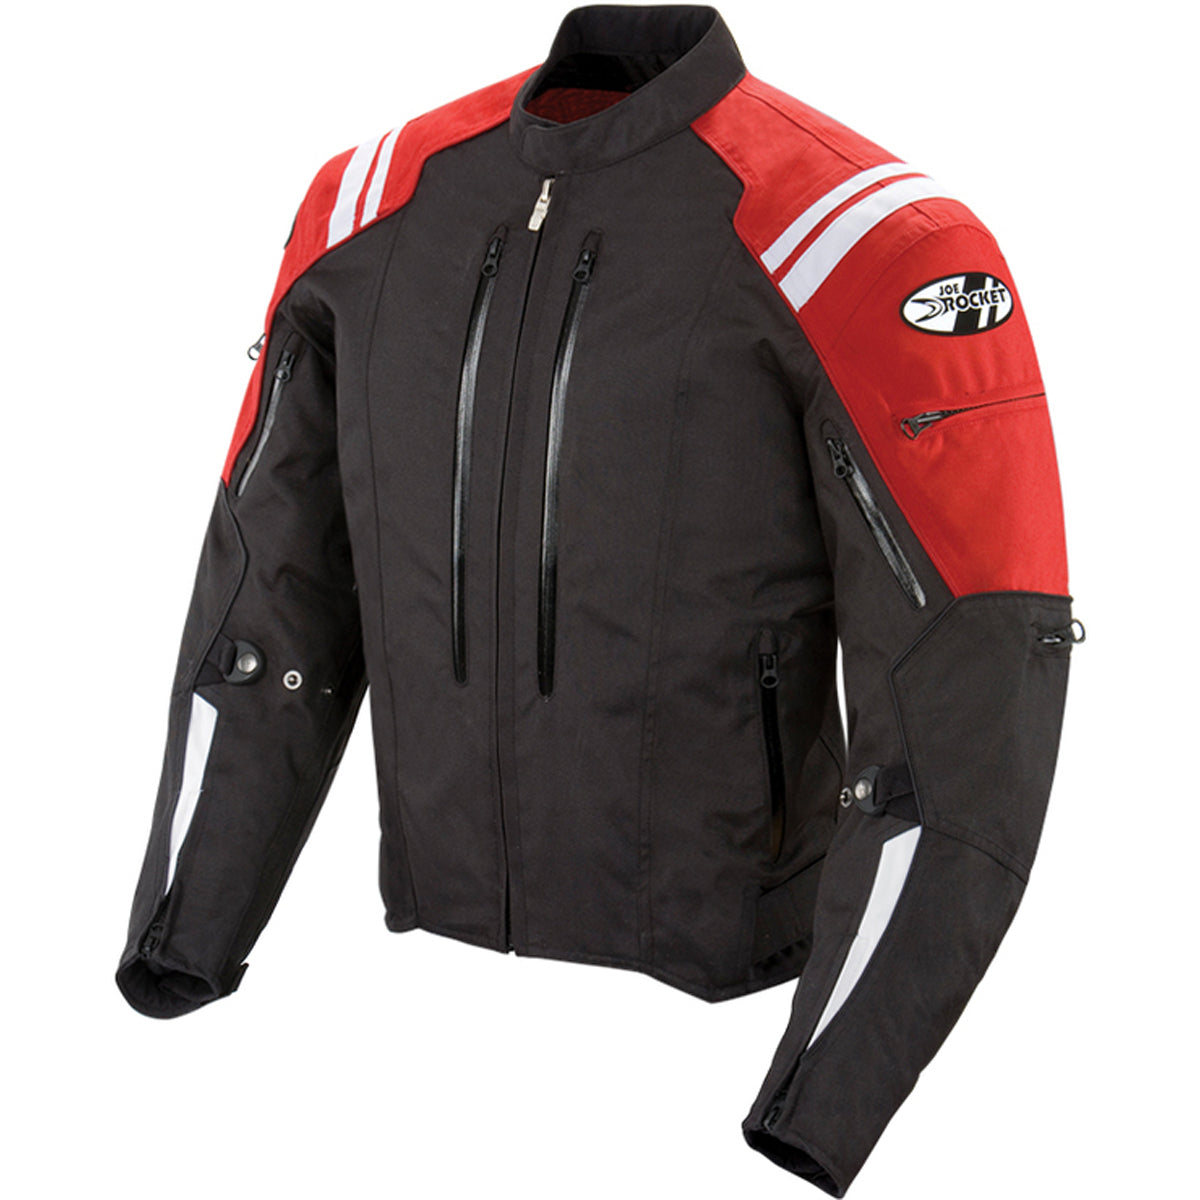 Joe Rocket Atomic 4.0 Men's Street Jackets - Red/Black